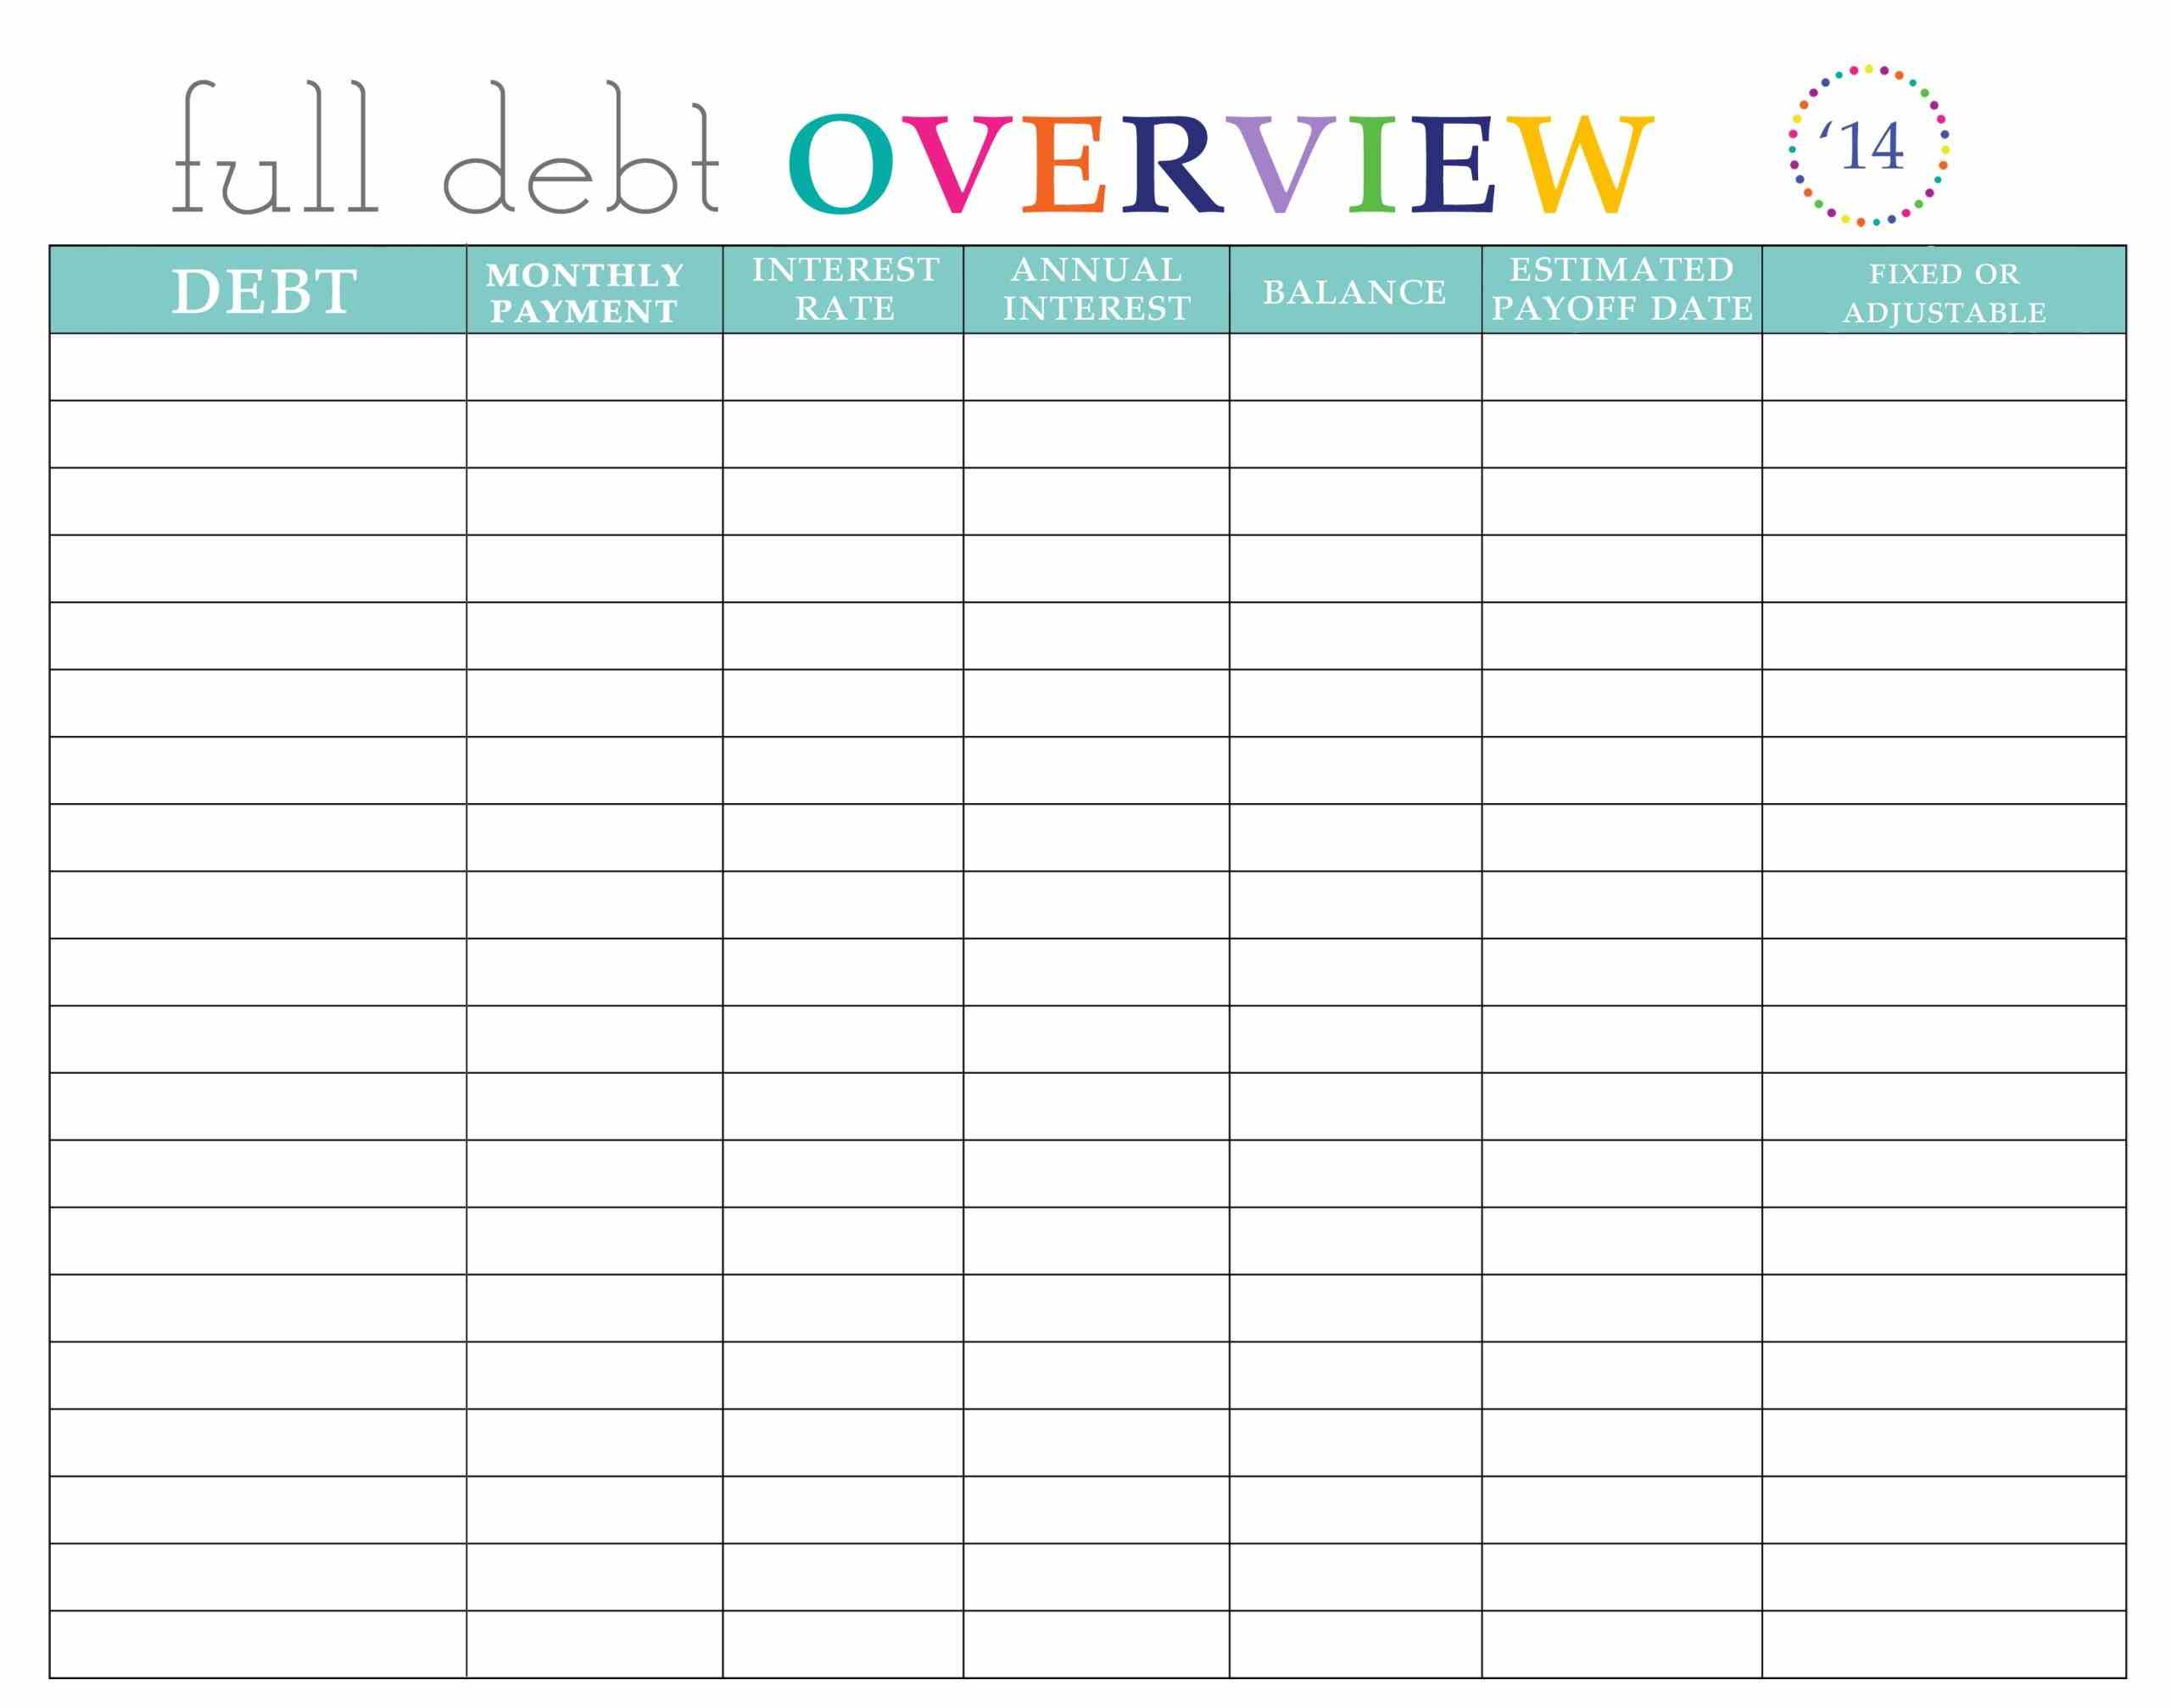 rental property income and expense worksheet excel – Income and Expenses Worksheet